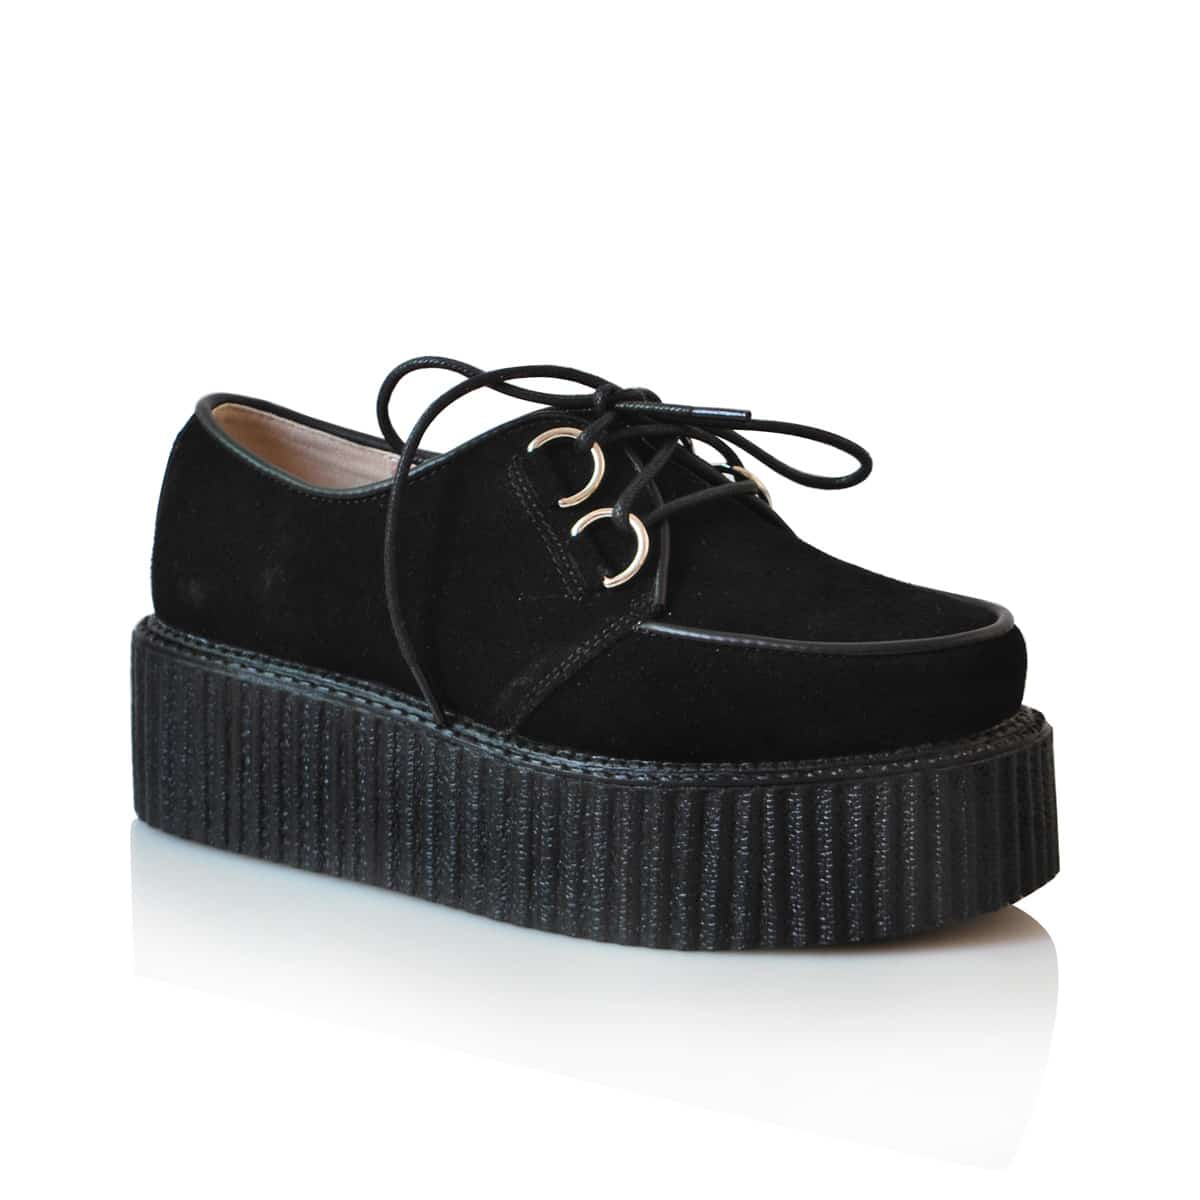 Leather Platform Creepers Black -SheIn(Sheinside)